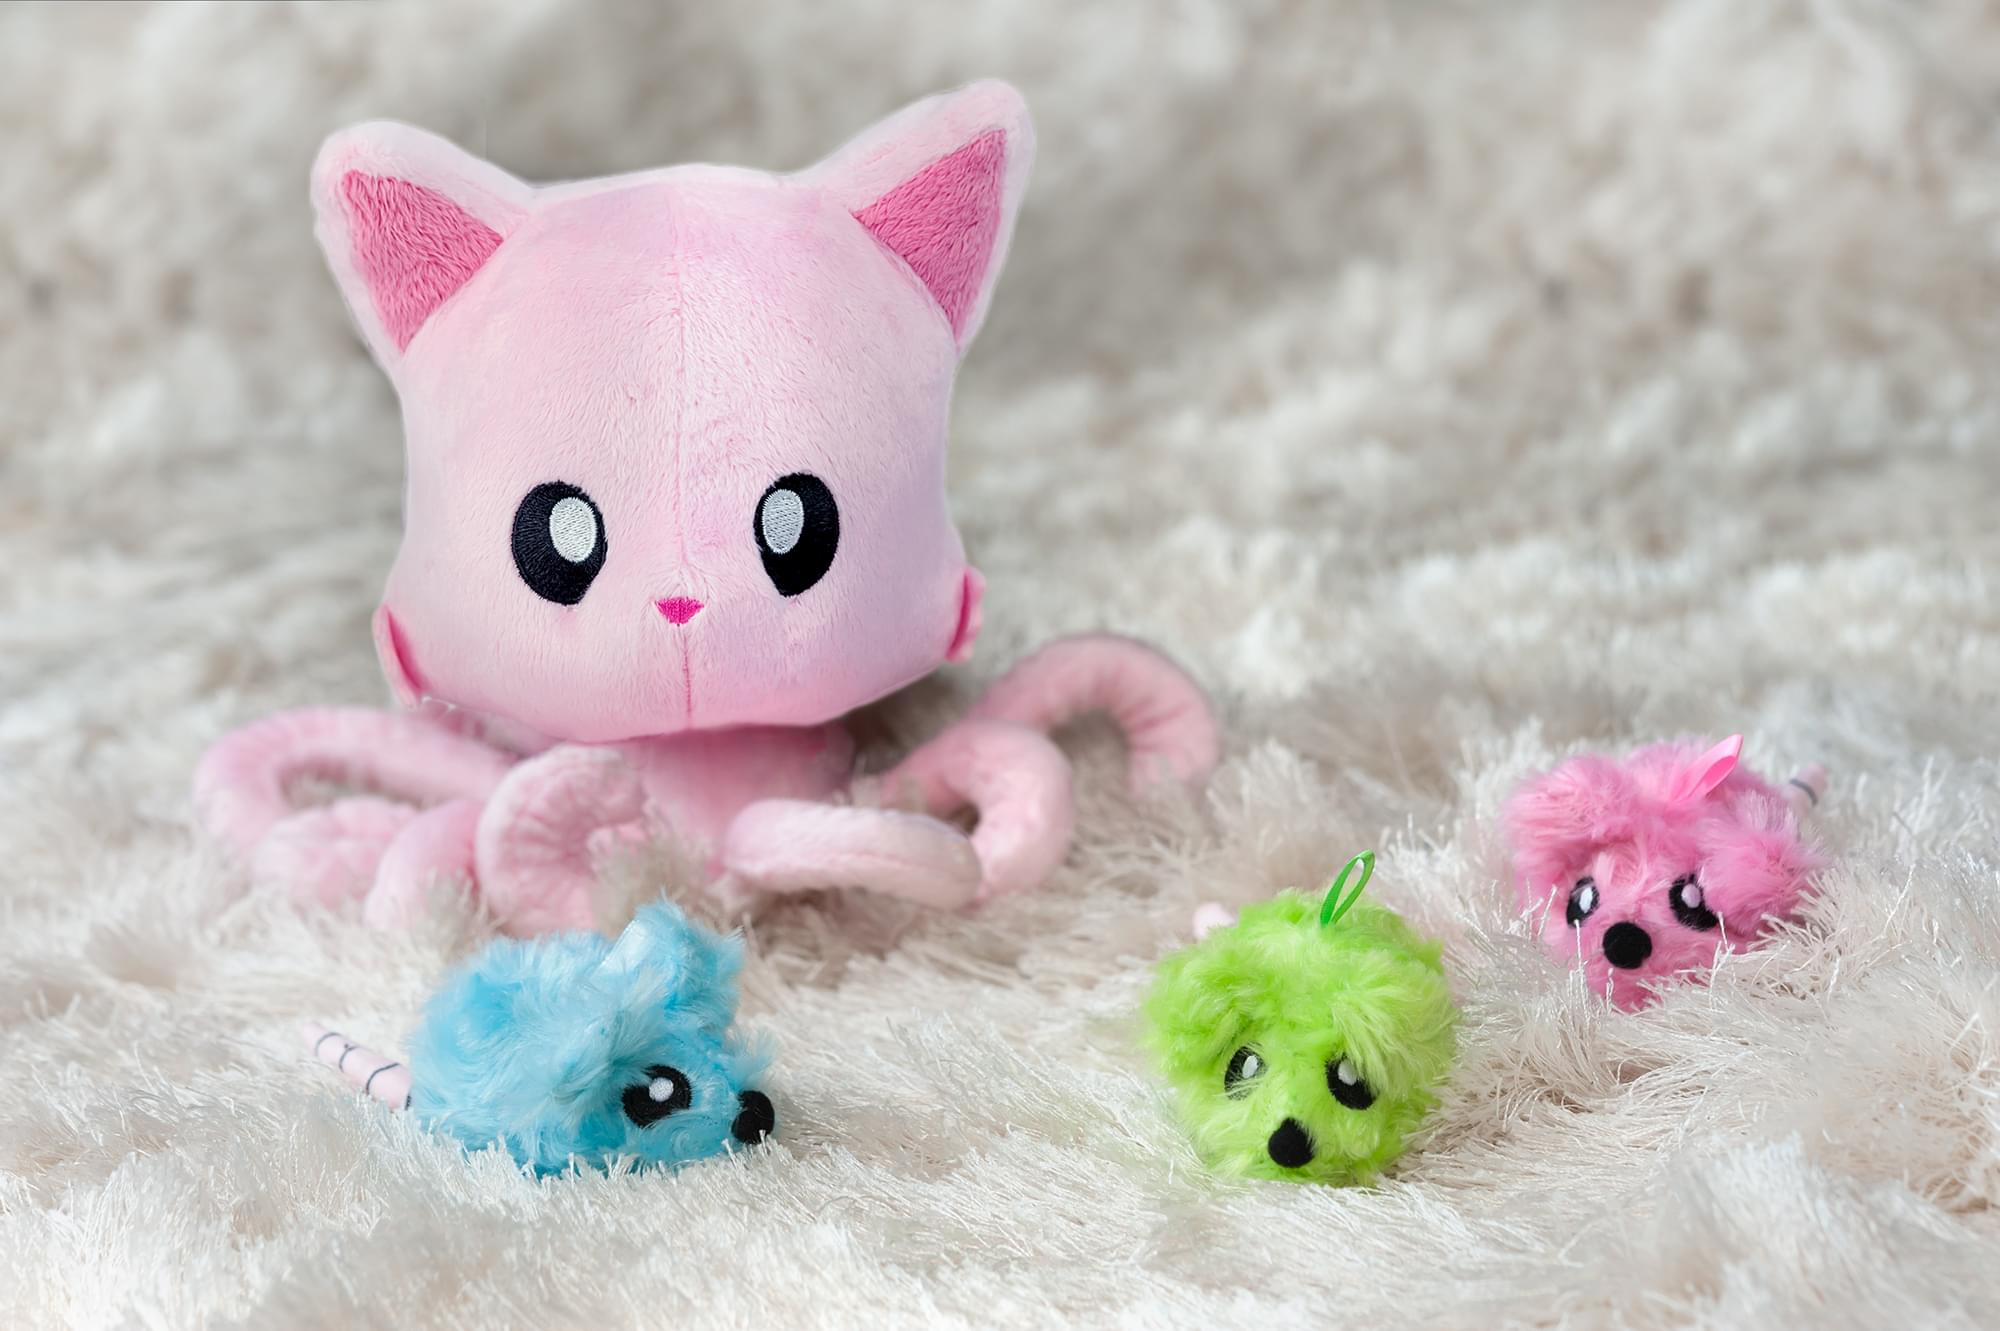 Tentacle Kitty 5 Inch Cotton Candy Mice Plush | Unscented 3 Pack